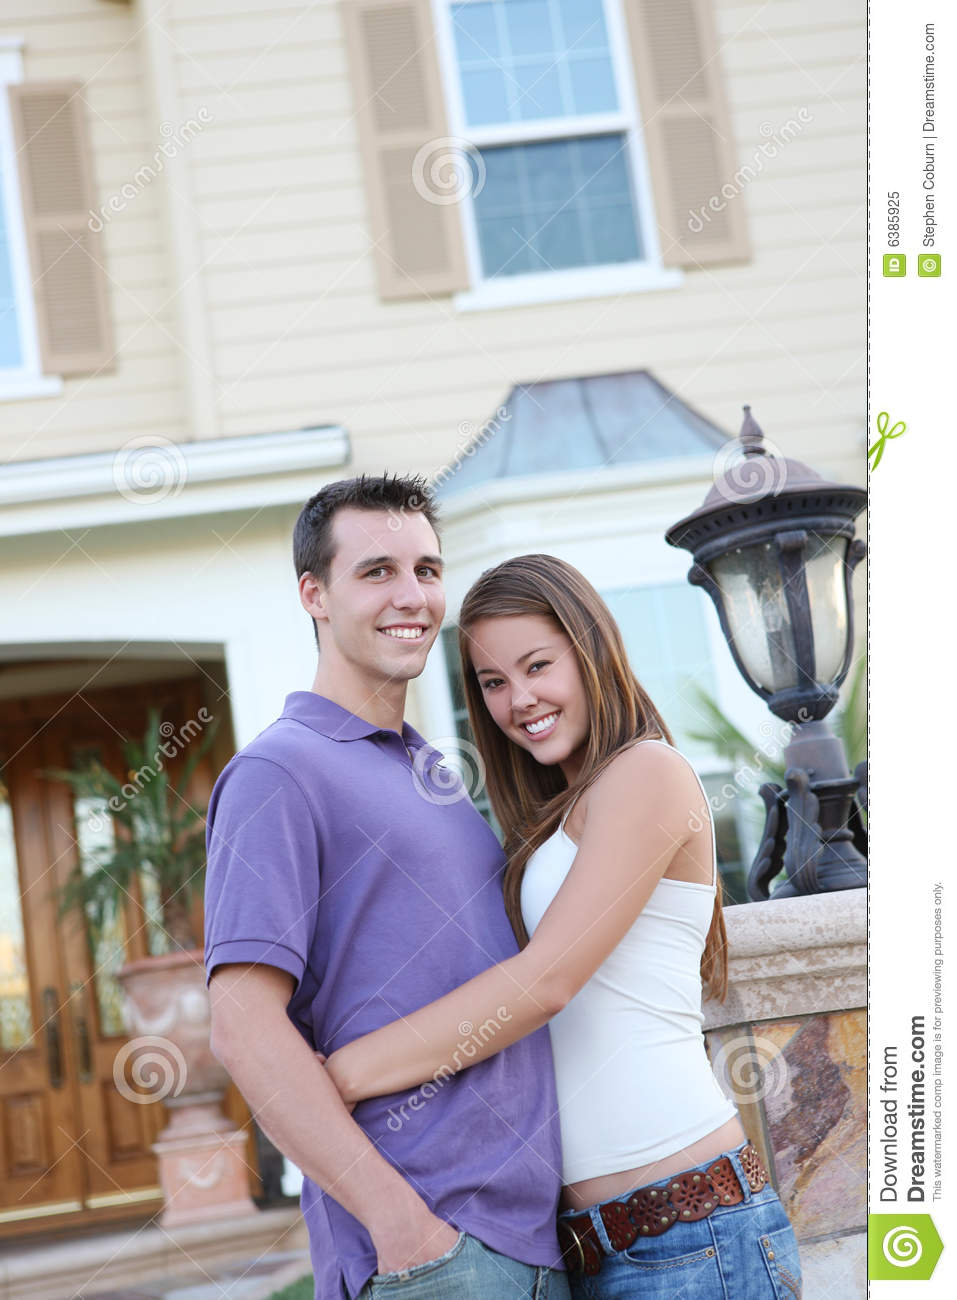 Couple in love in front of home royalty free stock photo image 6385925 - Young couple modern homes ...